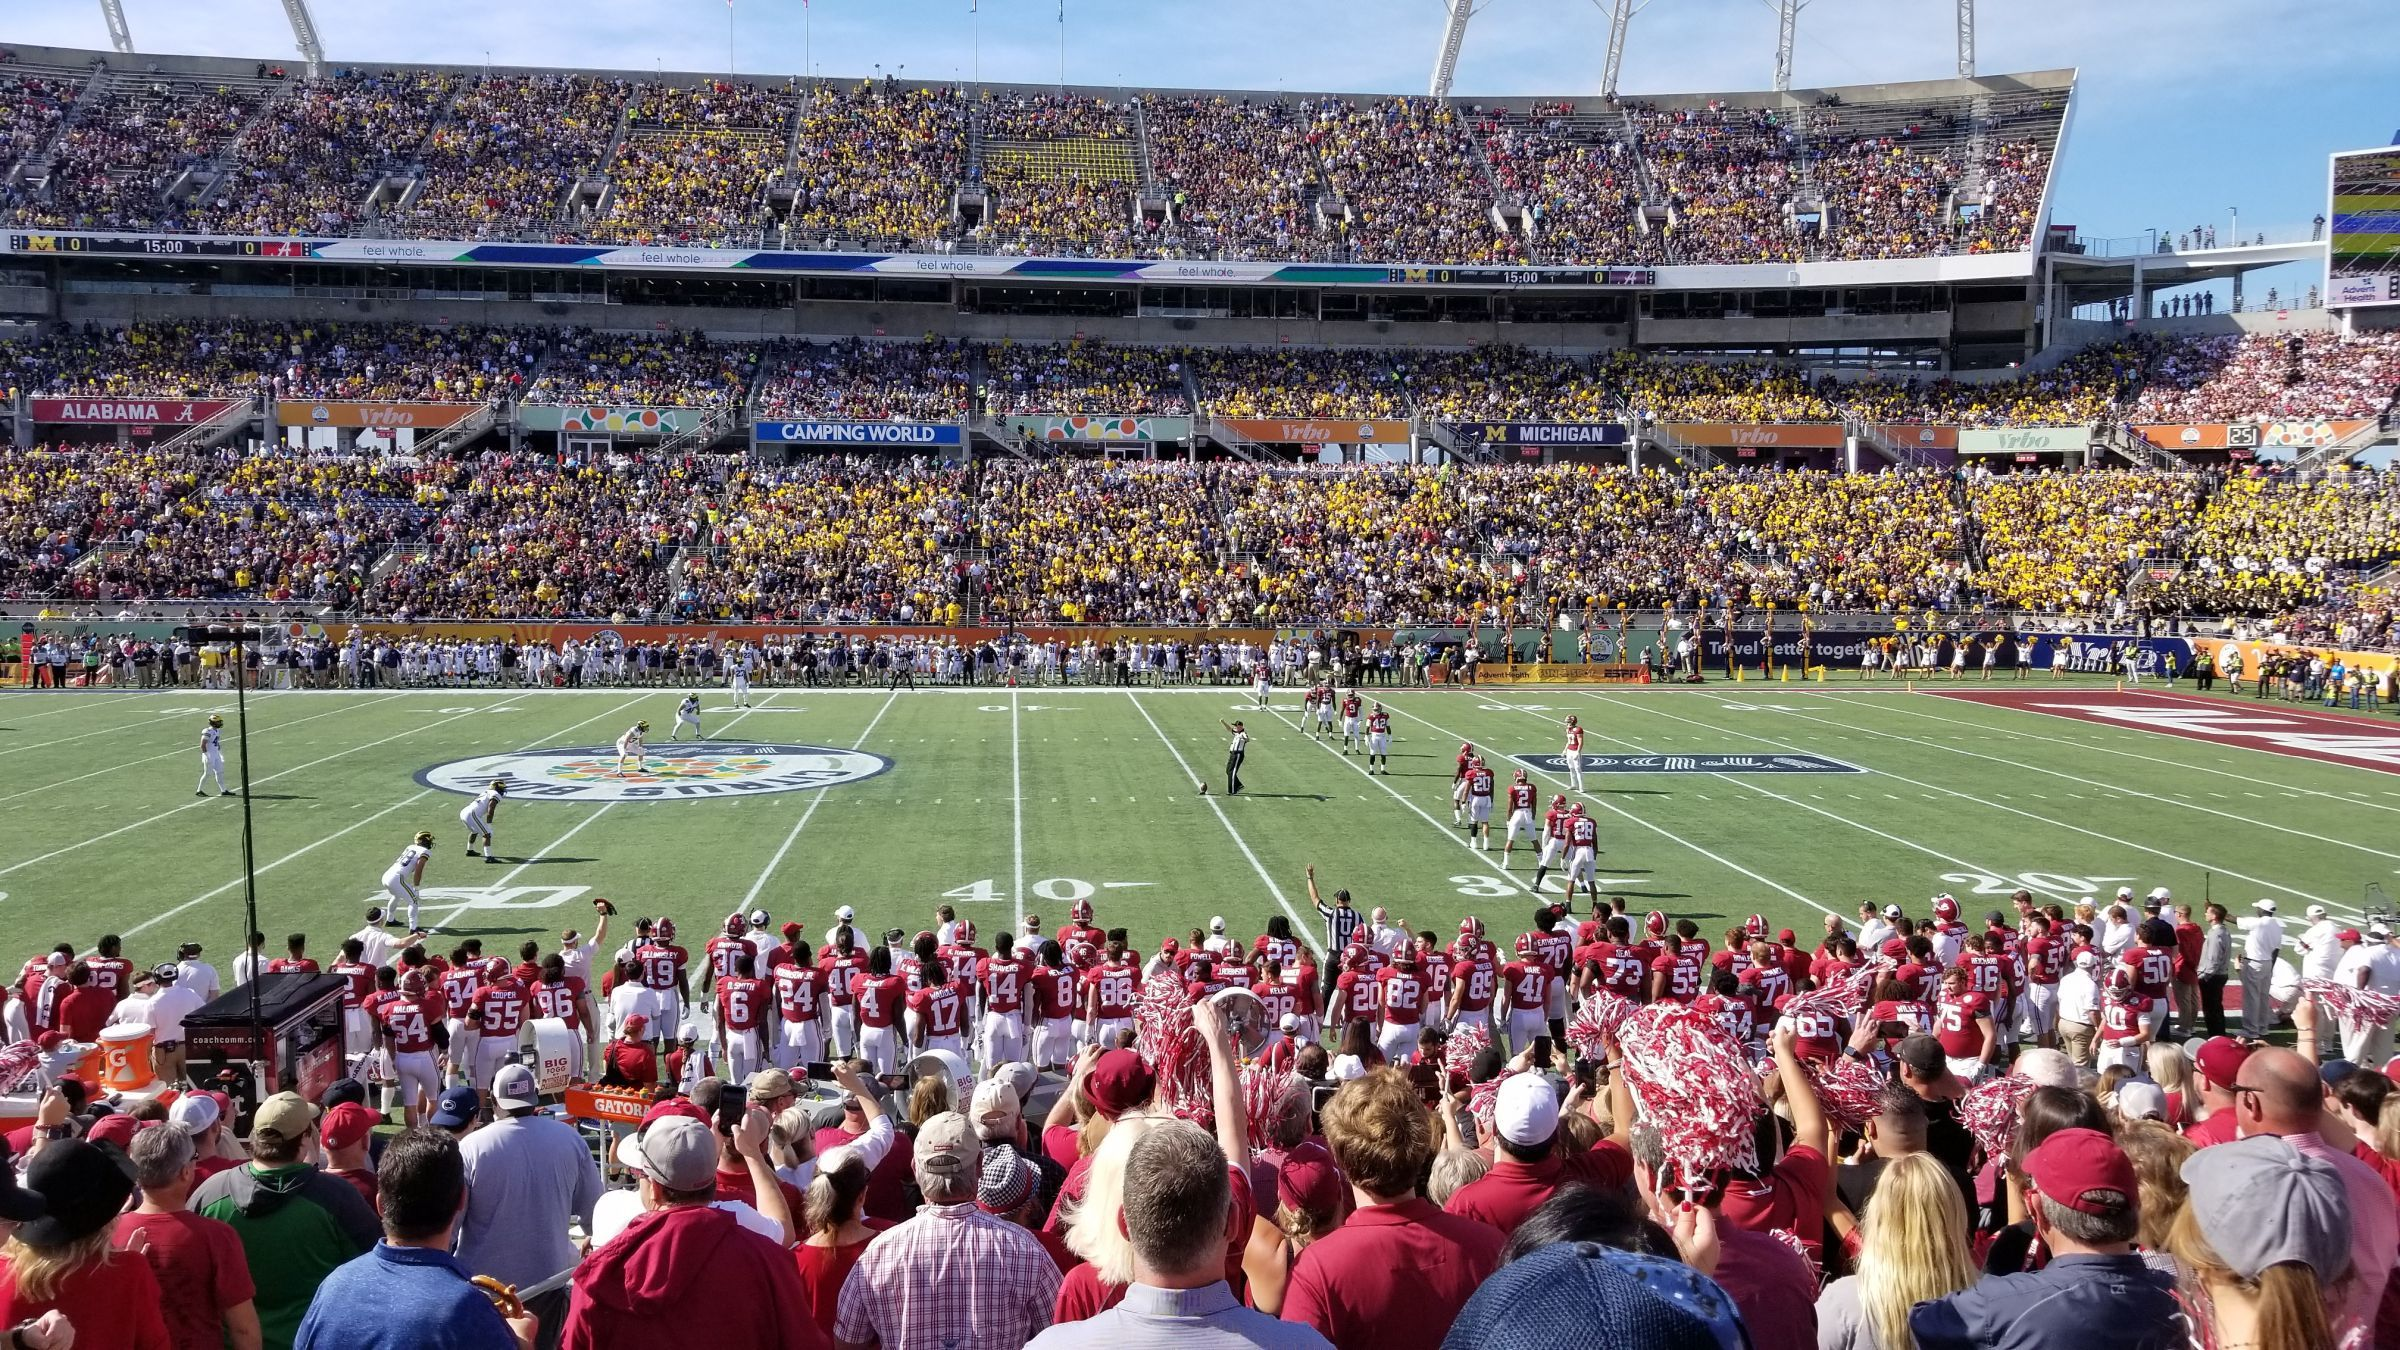 Section 107 seat view